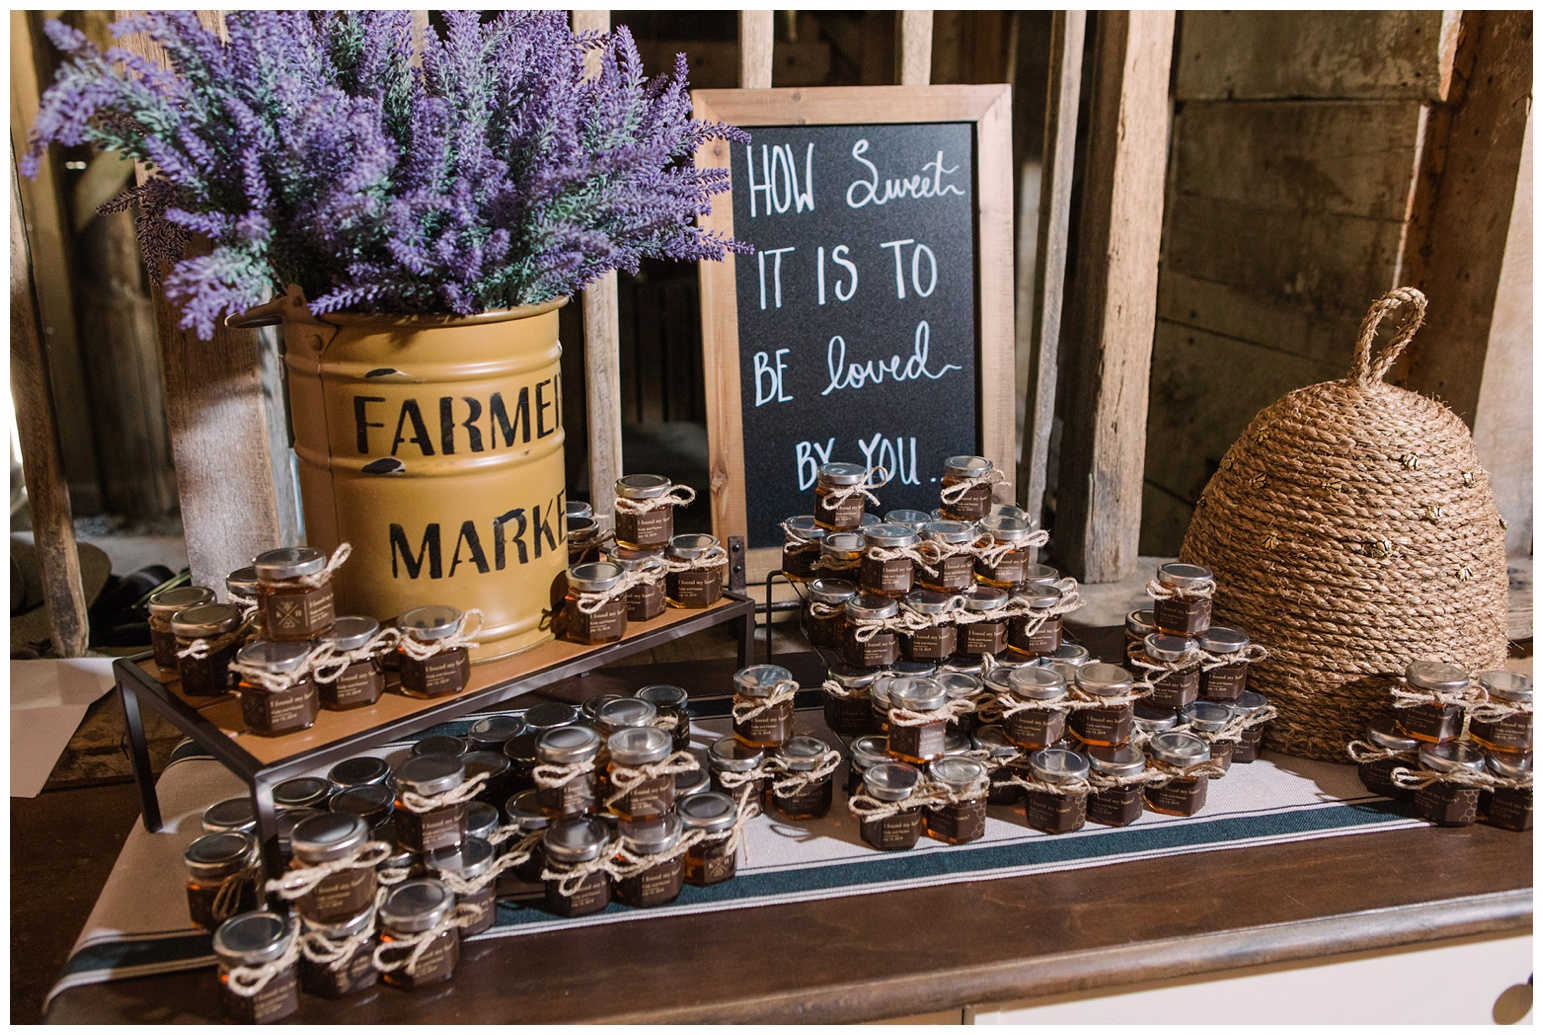 "honey bee theme - honey bee inspired - wedding ideas and inspiration - honey pot - real honey in jars - wedding favors - with bee balm flowers arrangement - chic basket bee hive with golden honey bees and ""how sweet it is to be loved by you"" sign in barn reception - rustic wedding decor ideas and inspiration"